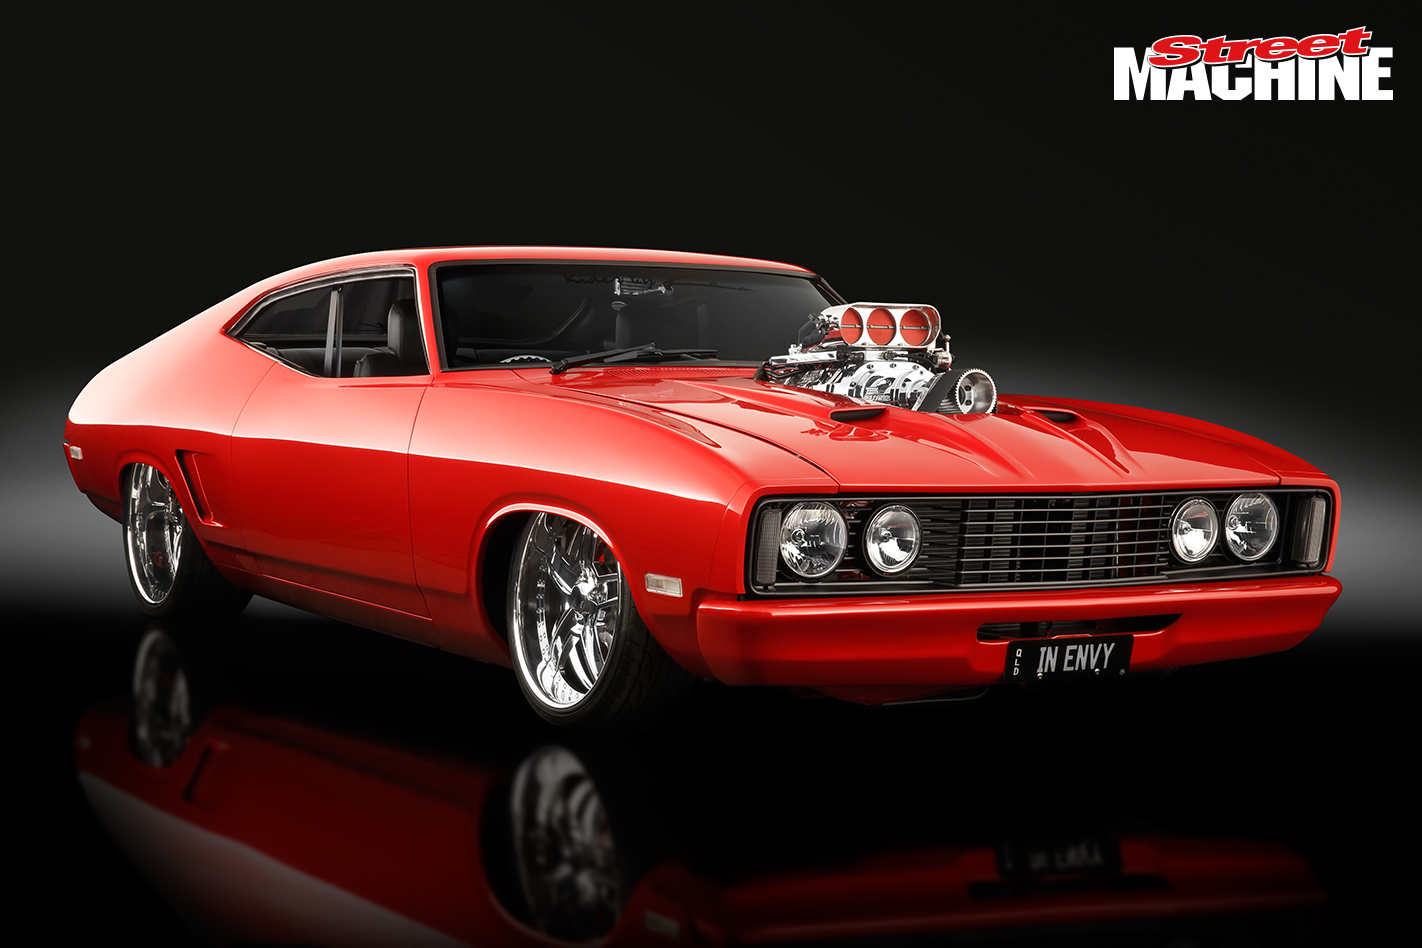 Blown 351 Powered Ford Xc Falcon Coupe Inenvy